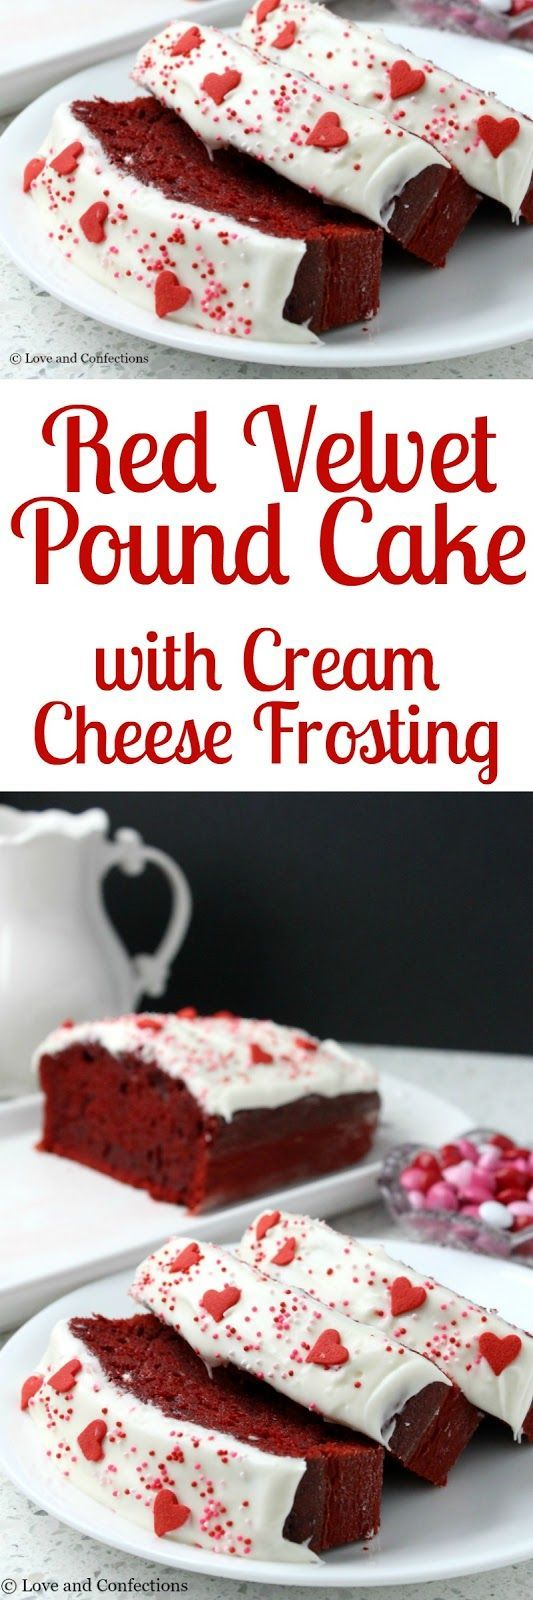 Red Velvet Pound Cake with Cream Cheese Frosting from LoveandConfections.com